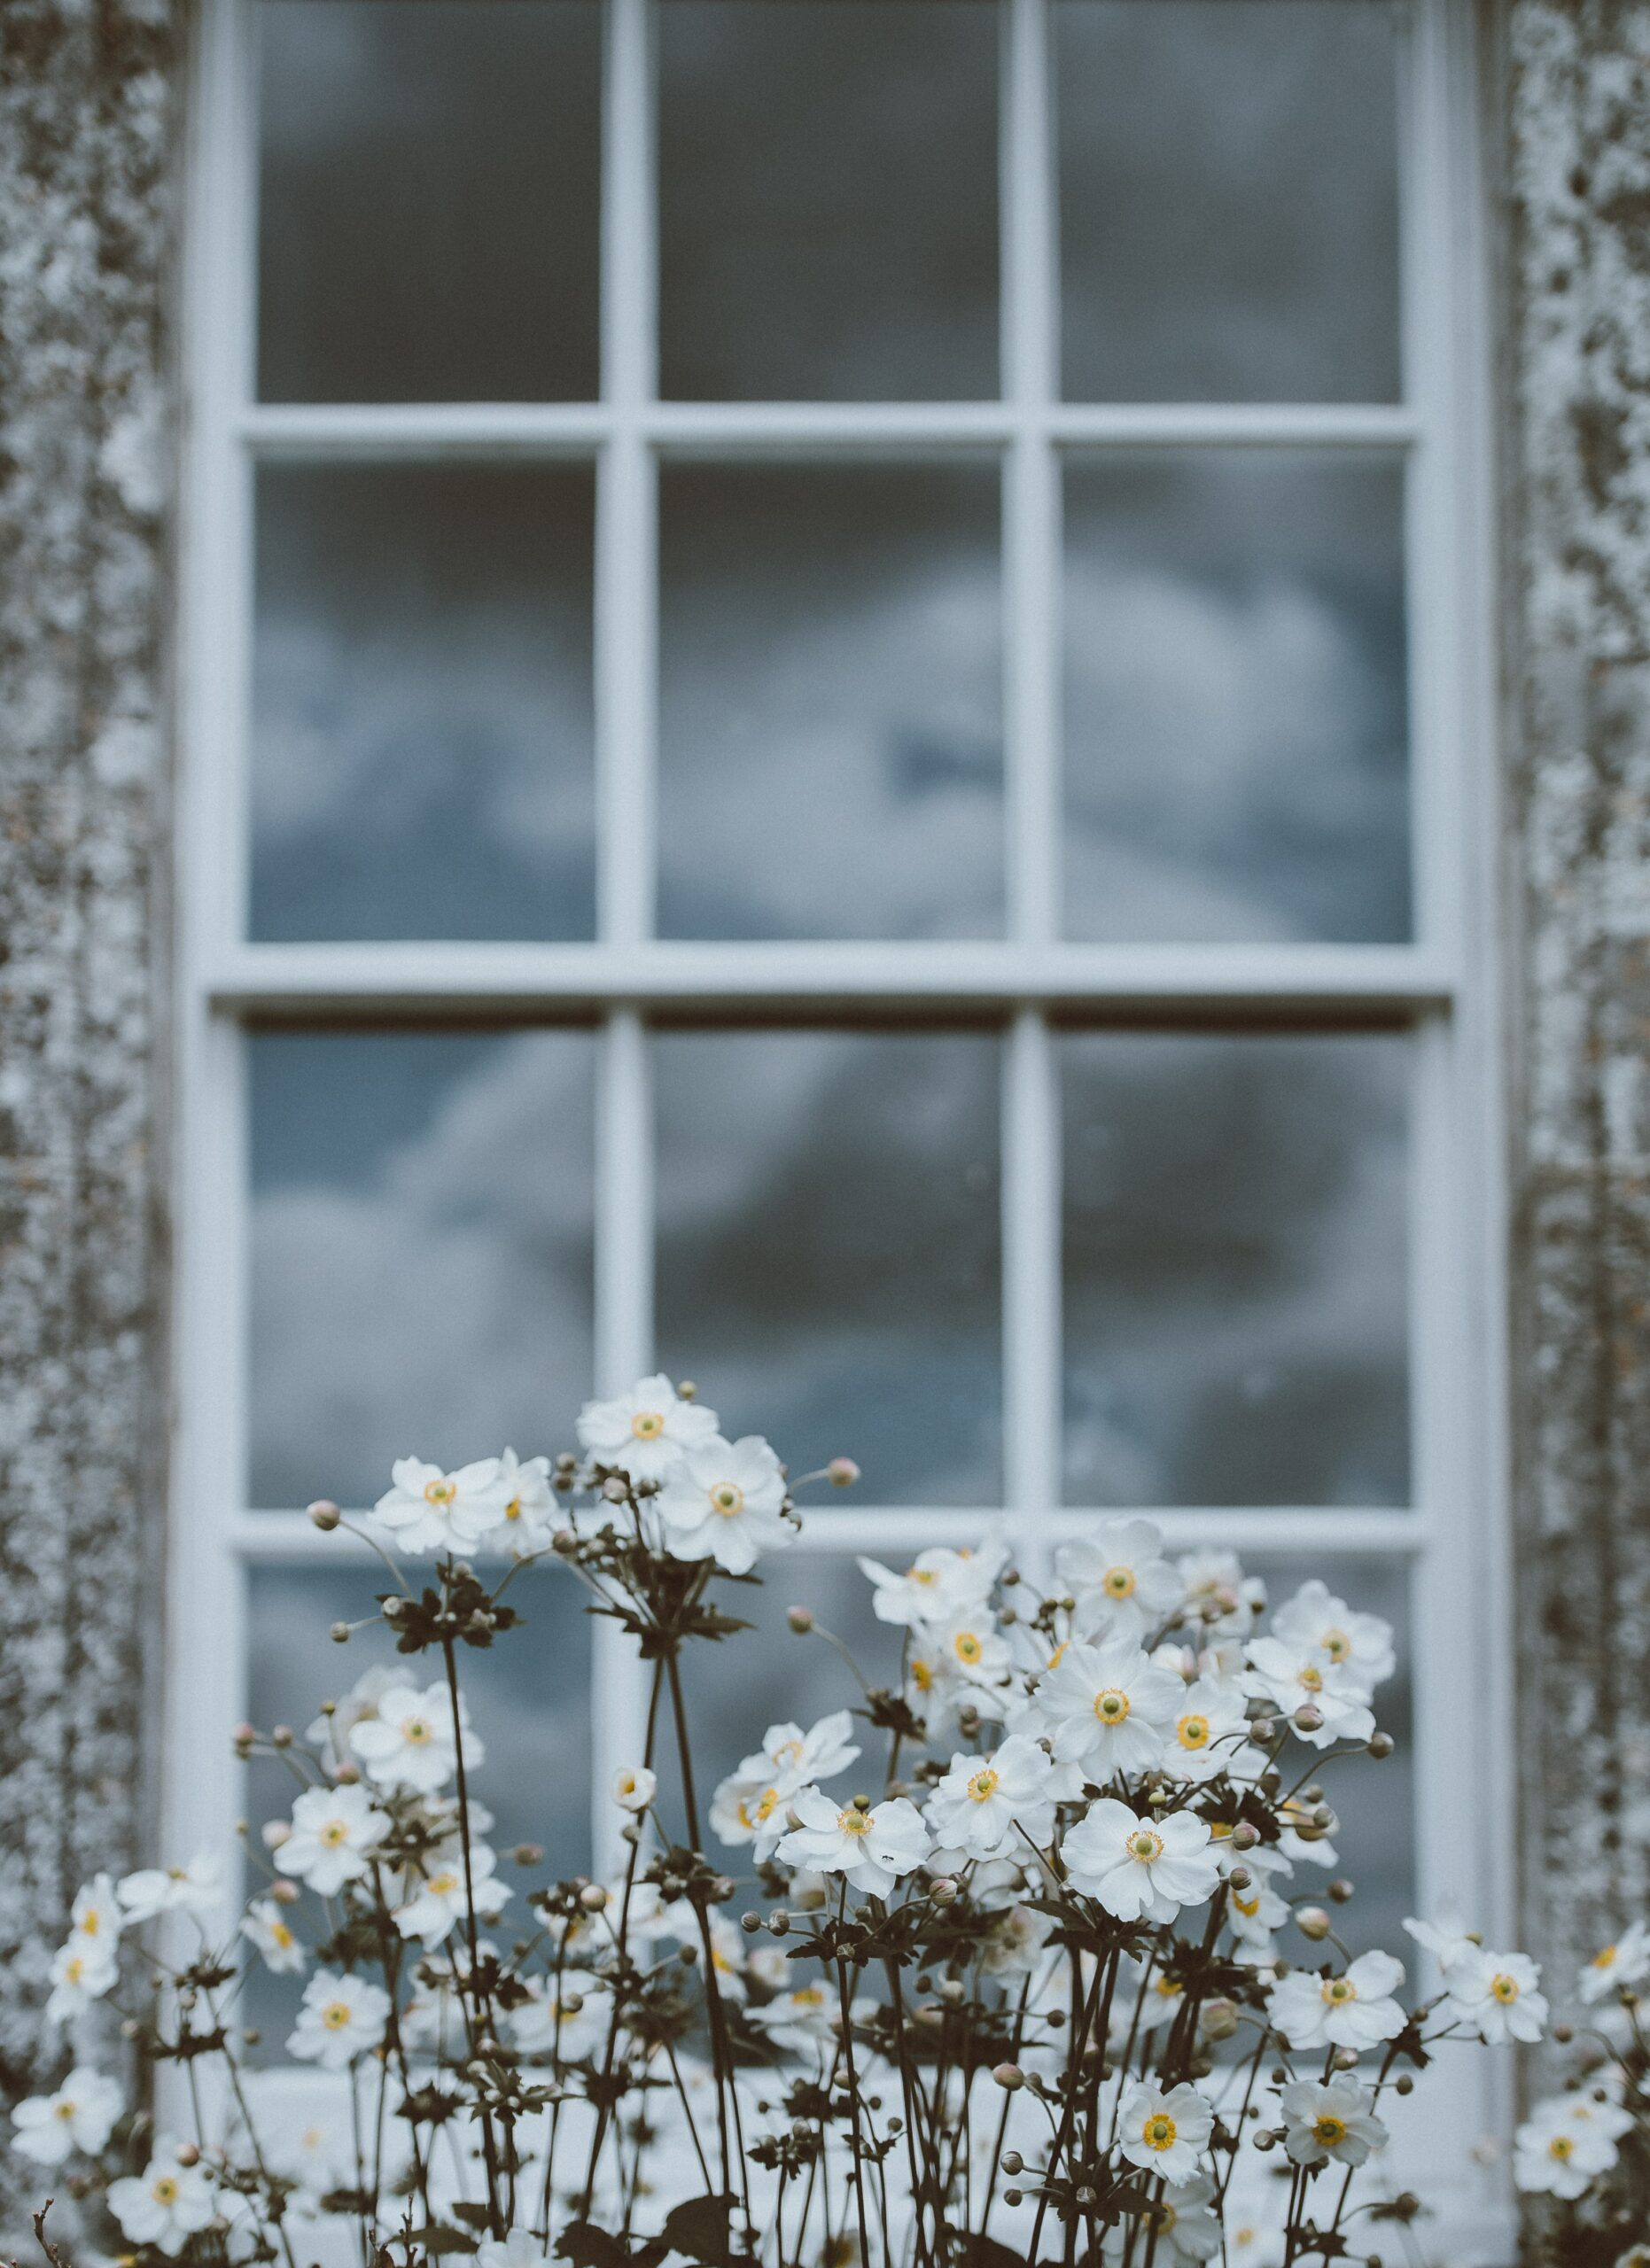 A photo of a window and box, with clouds outside, representing imagery accompanying the question of when it is time to speak with your doctor about medication for anxiety and depression